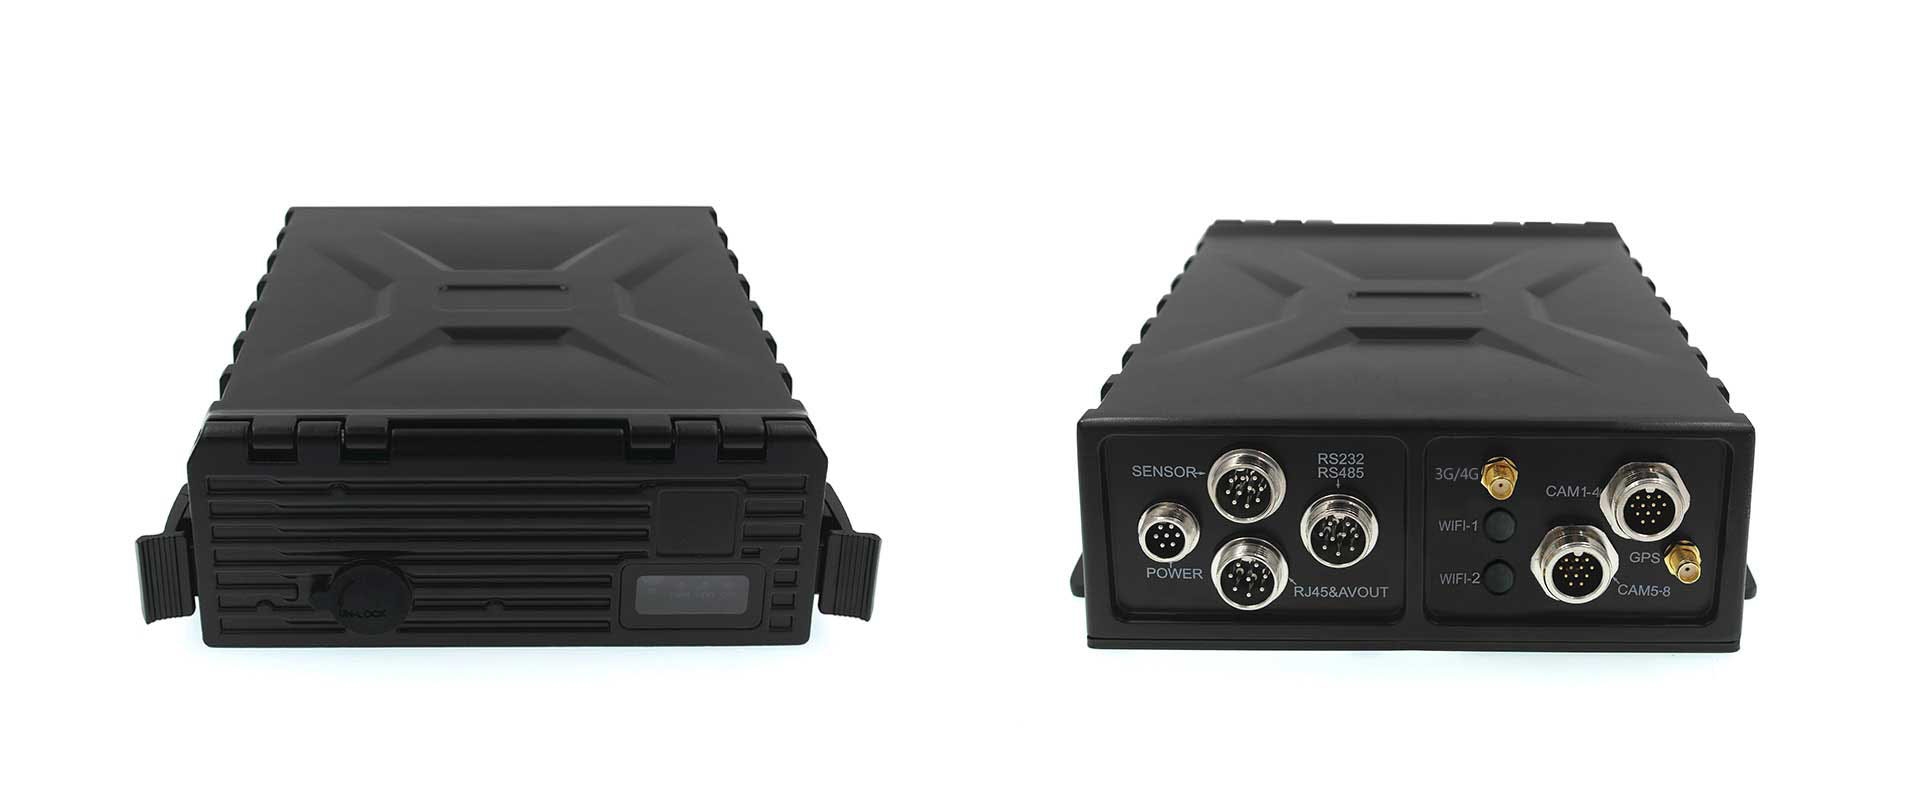 2T HDD Storage 8 ch 1080P HD Mdvr Ip67 4G GPS mobile dvr for bus with gps tracking JH6S-8HD-GFN Picture2